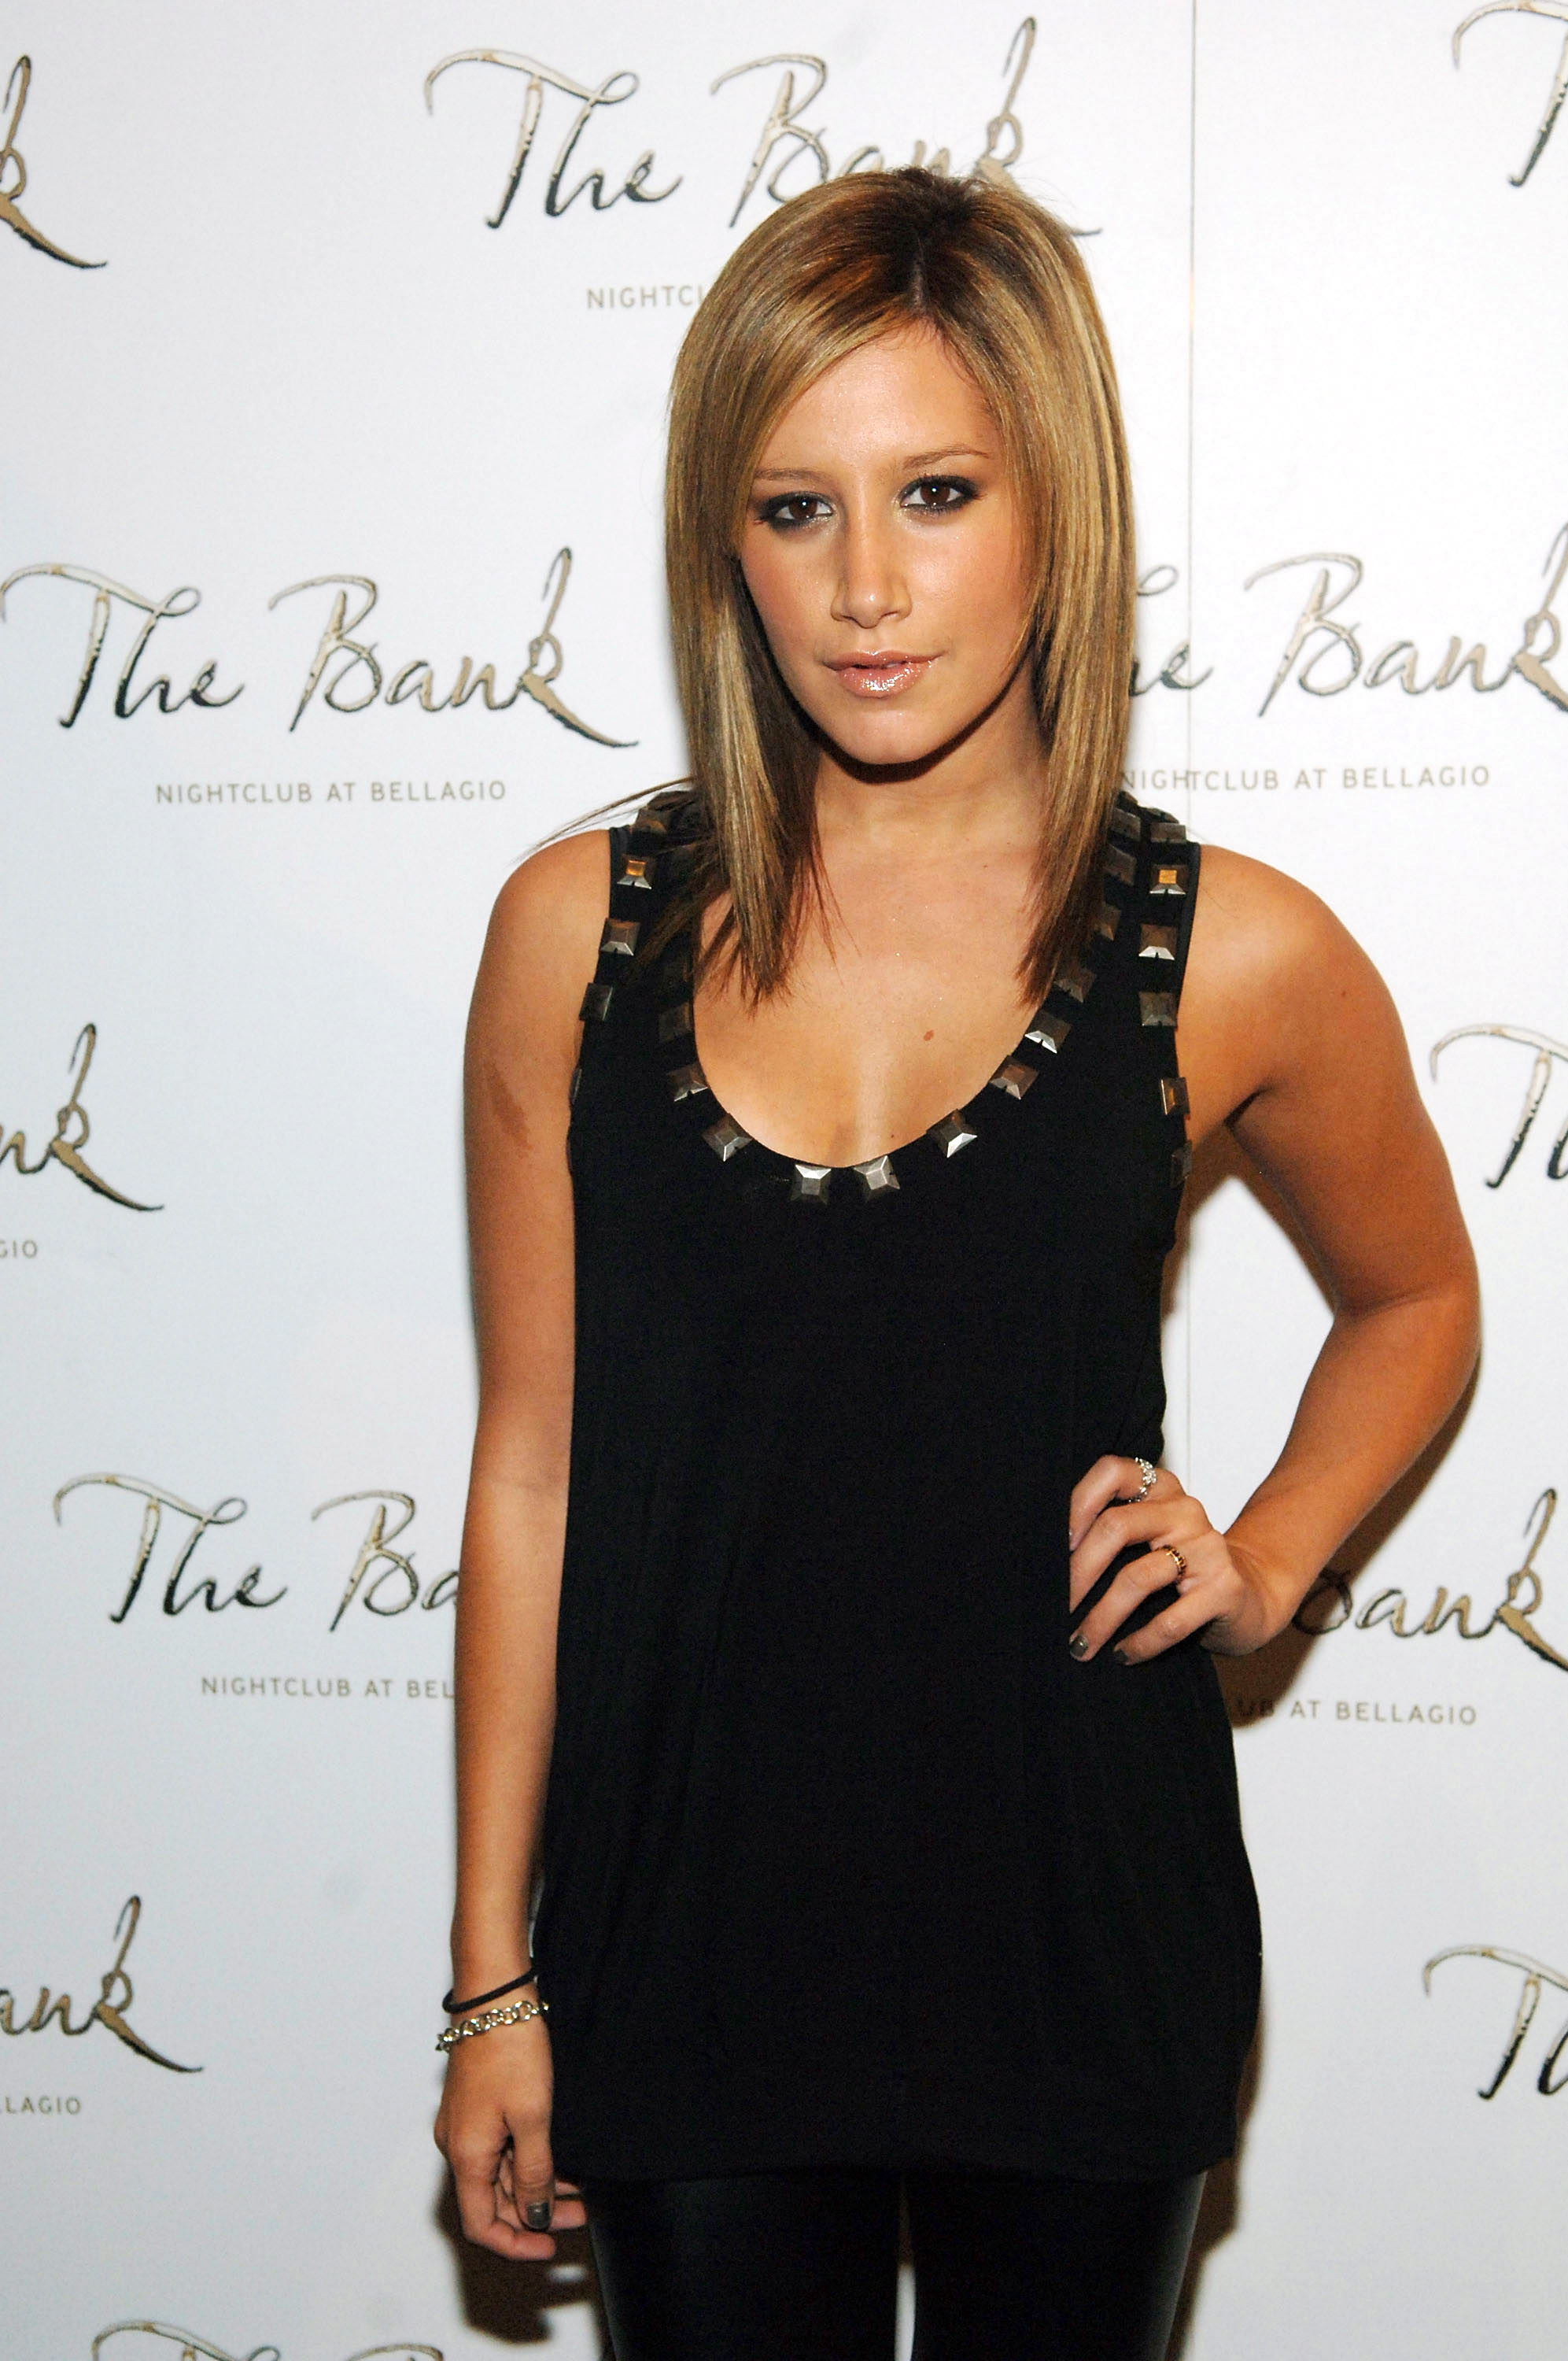 10467_Celebutopia-Ashley_Tisdale-Jennifer_Tisdale40s_birthday_celebration_in_Las_Vegas-07_122_447lo.jpg